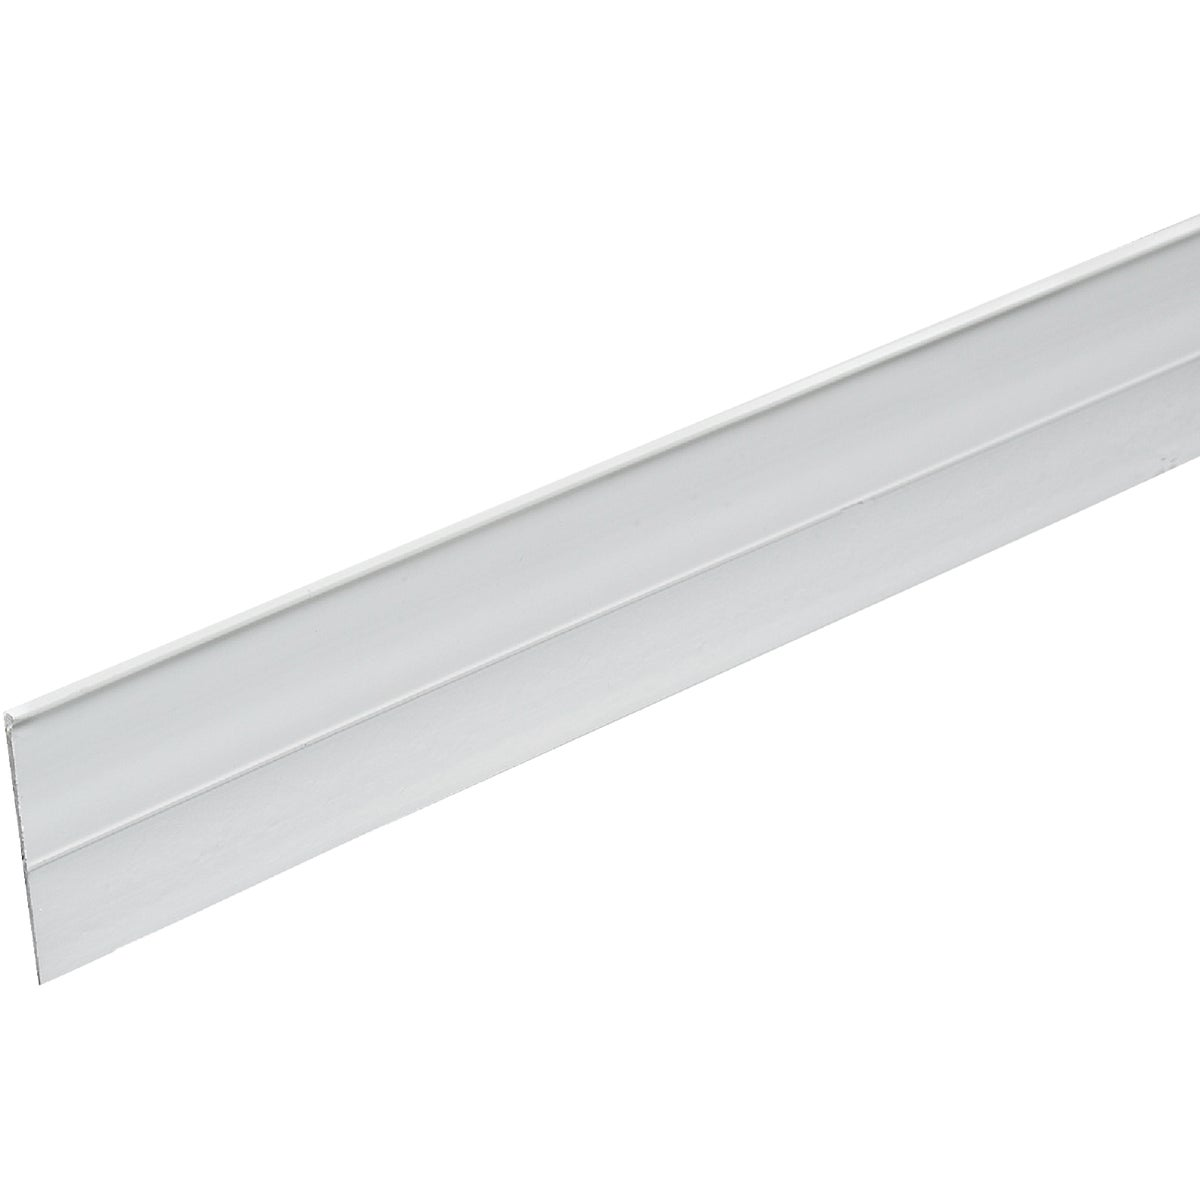 1-1/2X36 WHT DOOR BOTTOM - DS101WHDI by Thermwell Prods Co